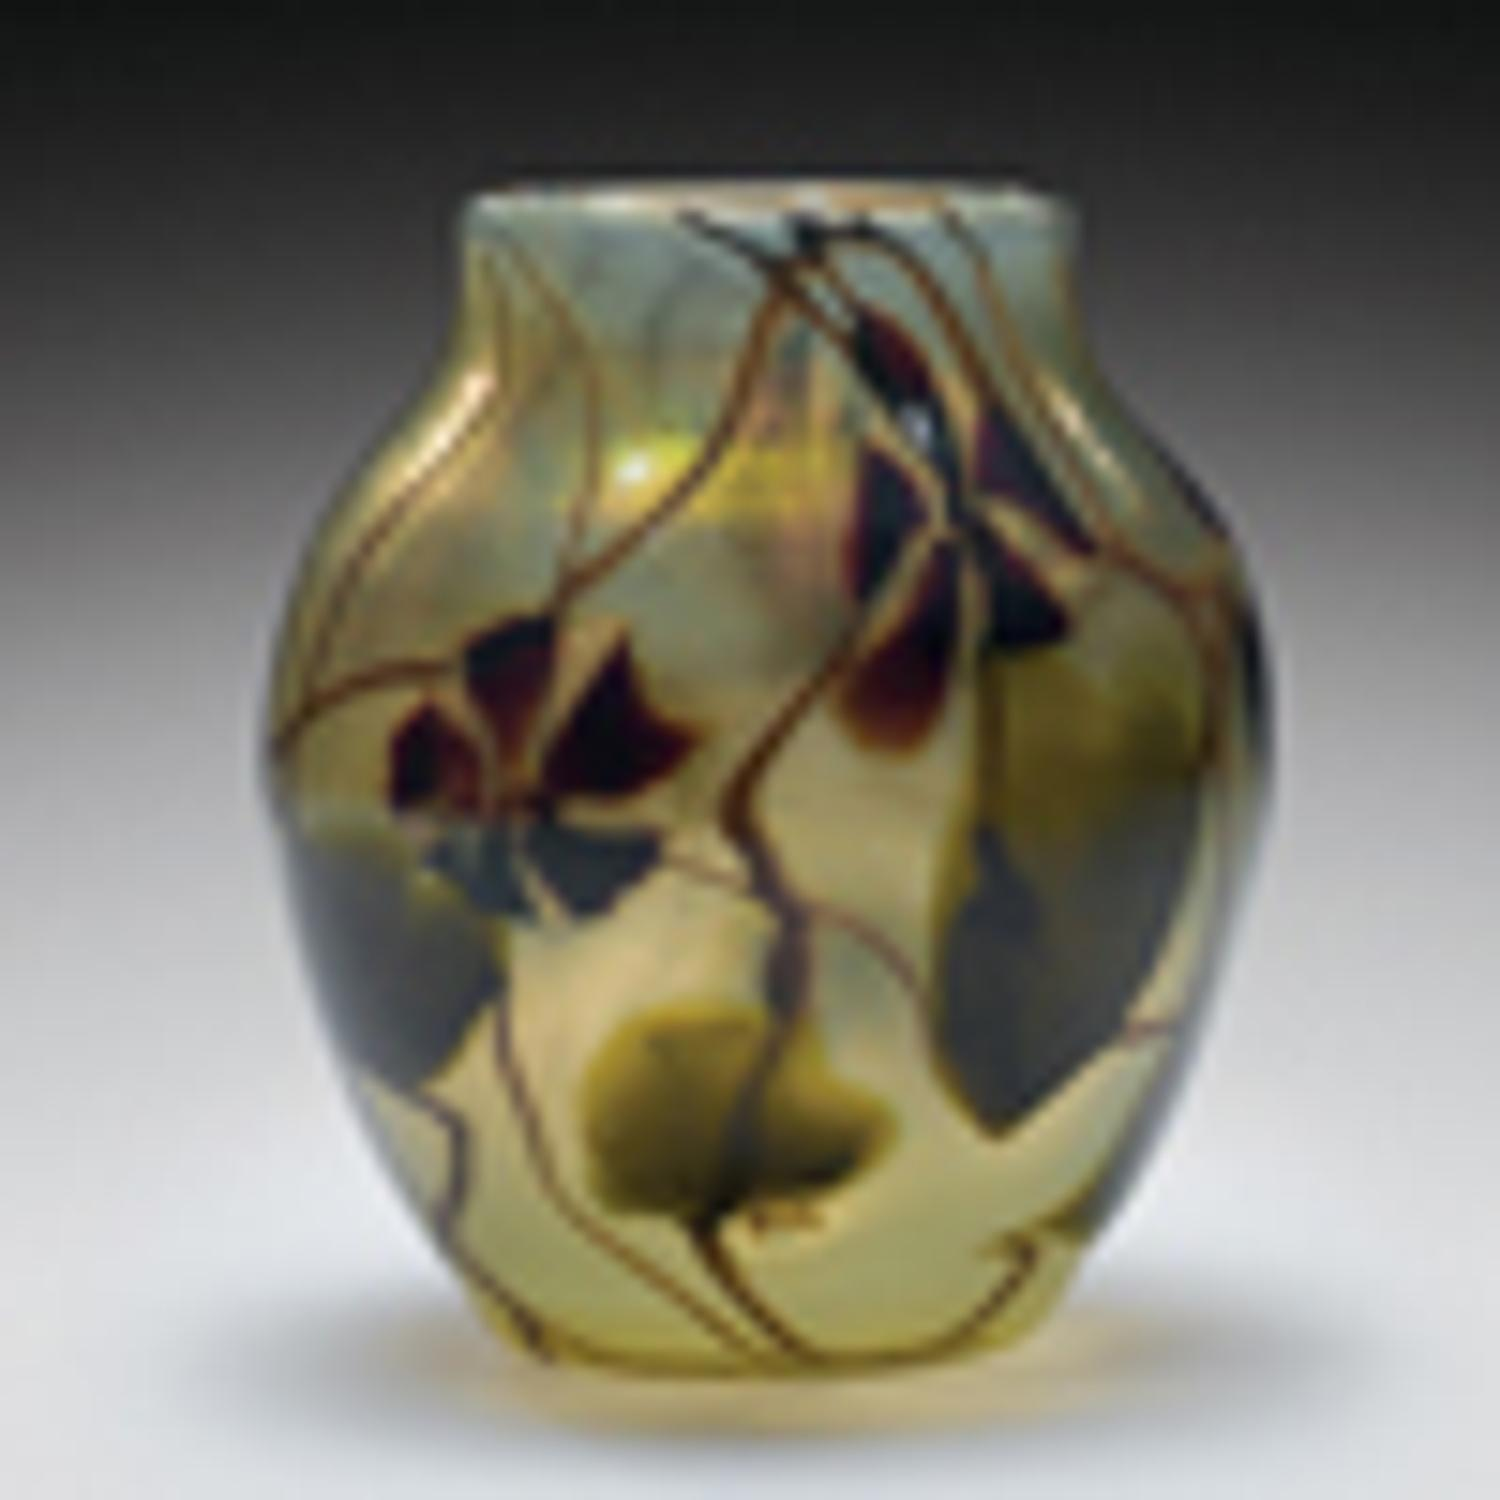 Tiffanys artistic innovations explored in exhibition of blown tiffanys artistic innovations explored in exhibition of blown favrile glass works at the corning artwire press release from artfixdaily reviewsmspy